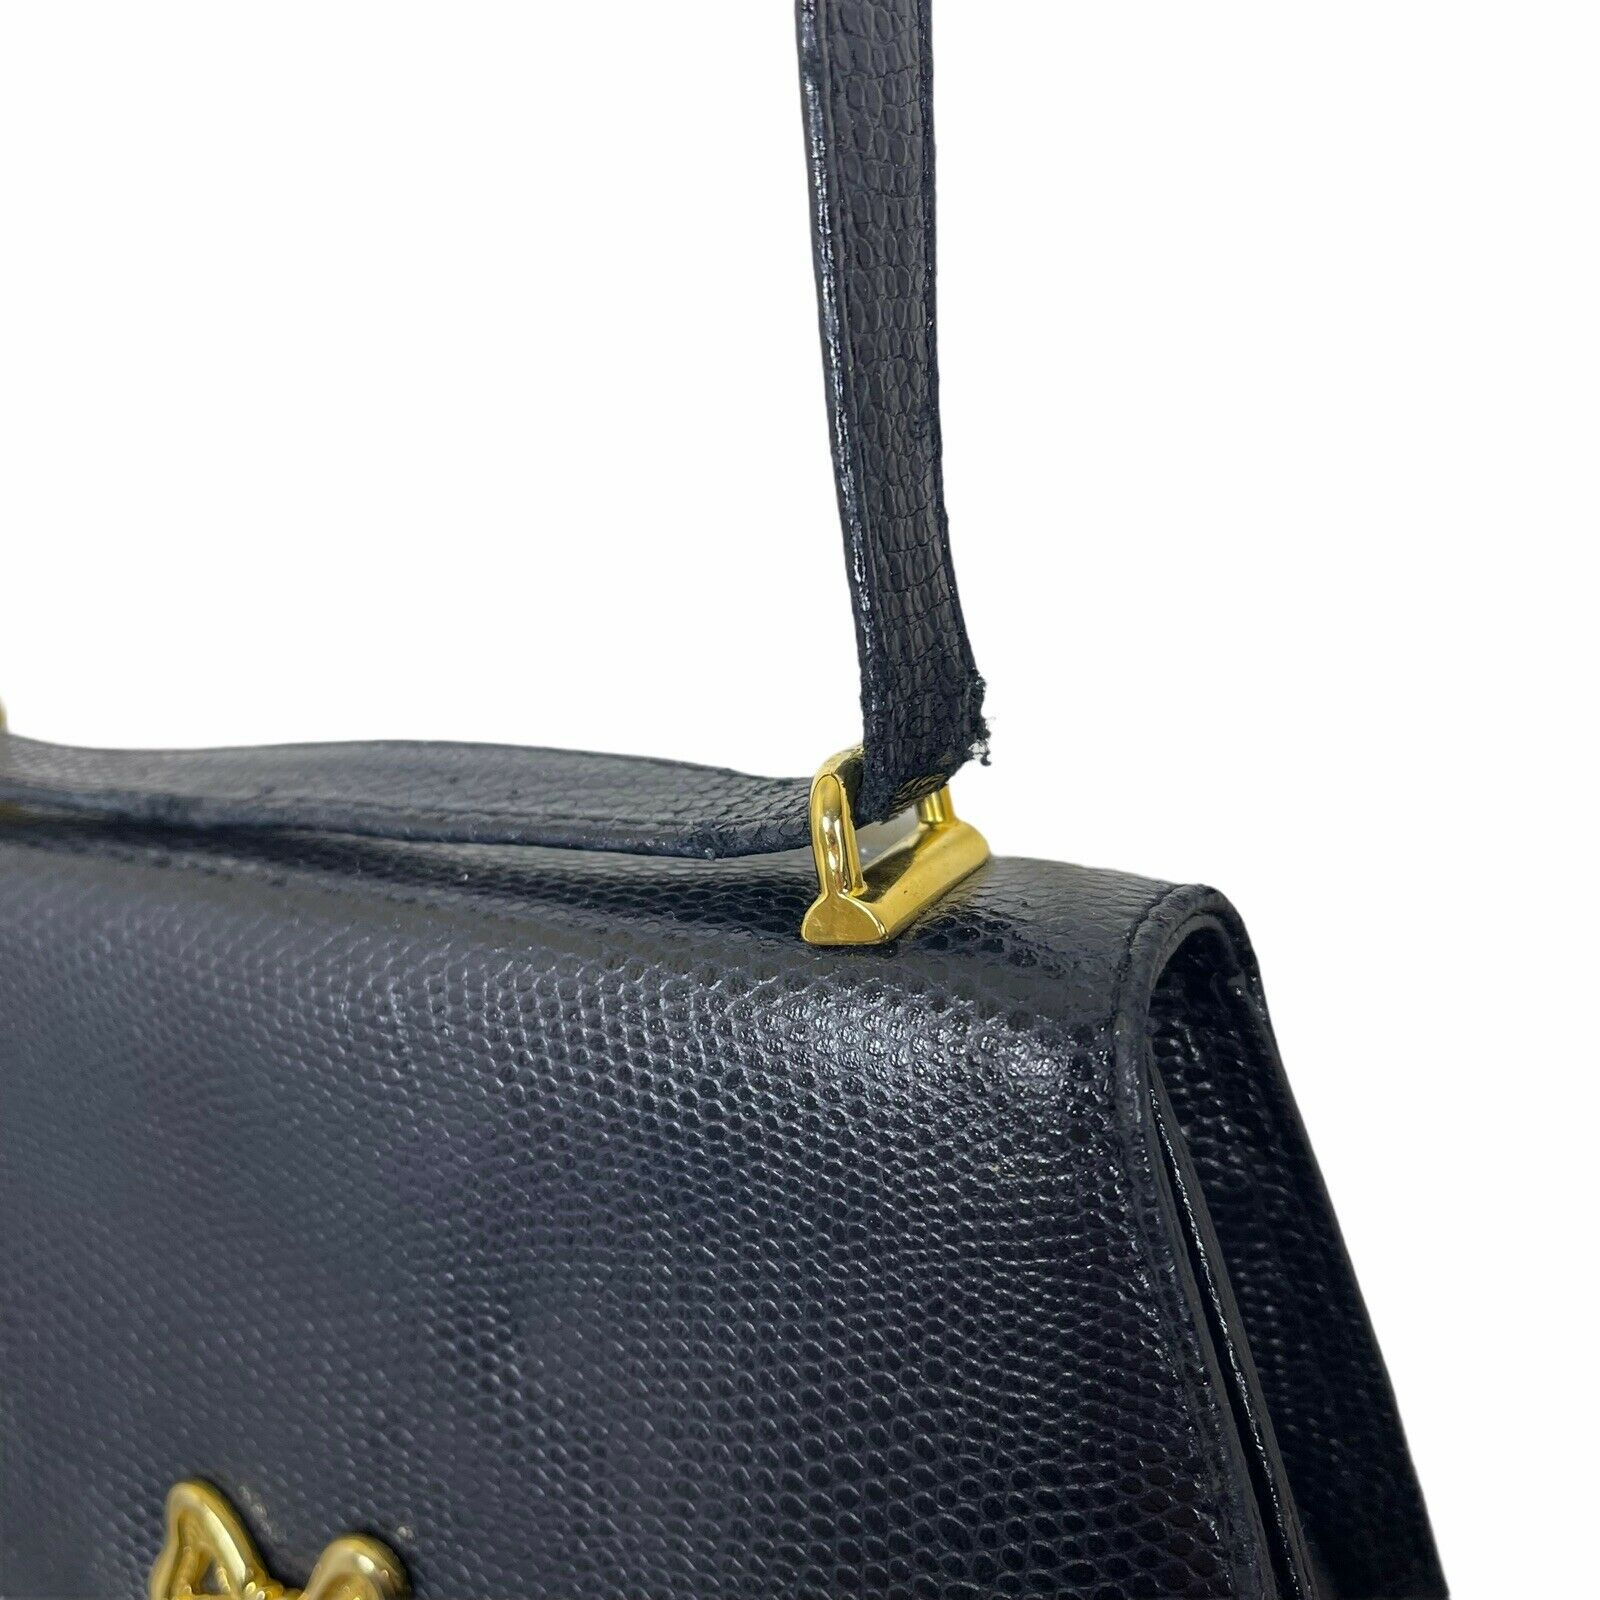 ARNOLD SCAASI NAVY LIZARD LEATHER WITH BOWS WOMEN… - image 9